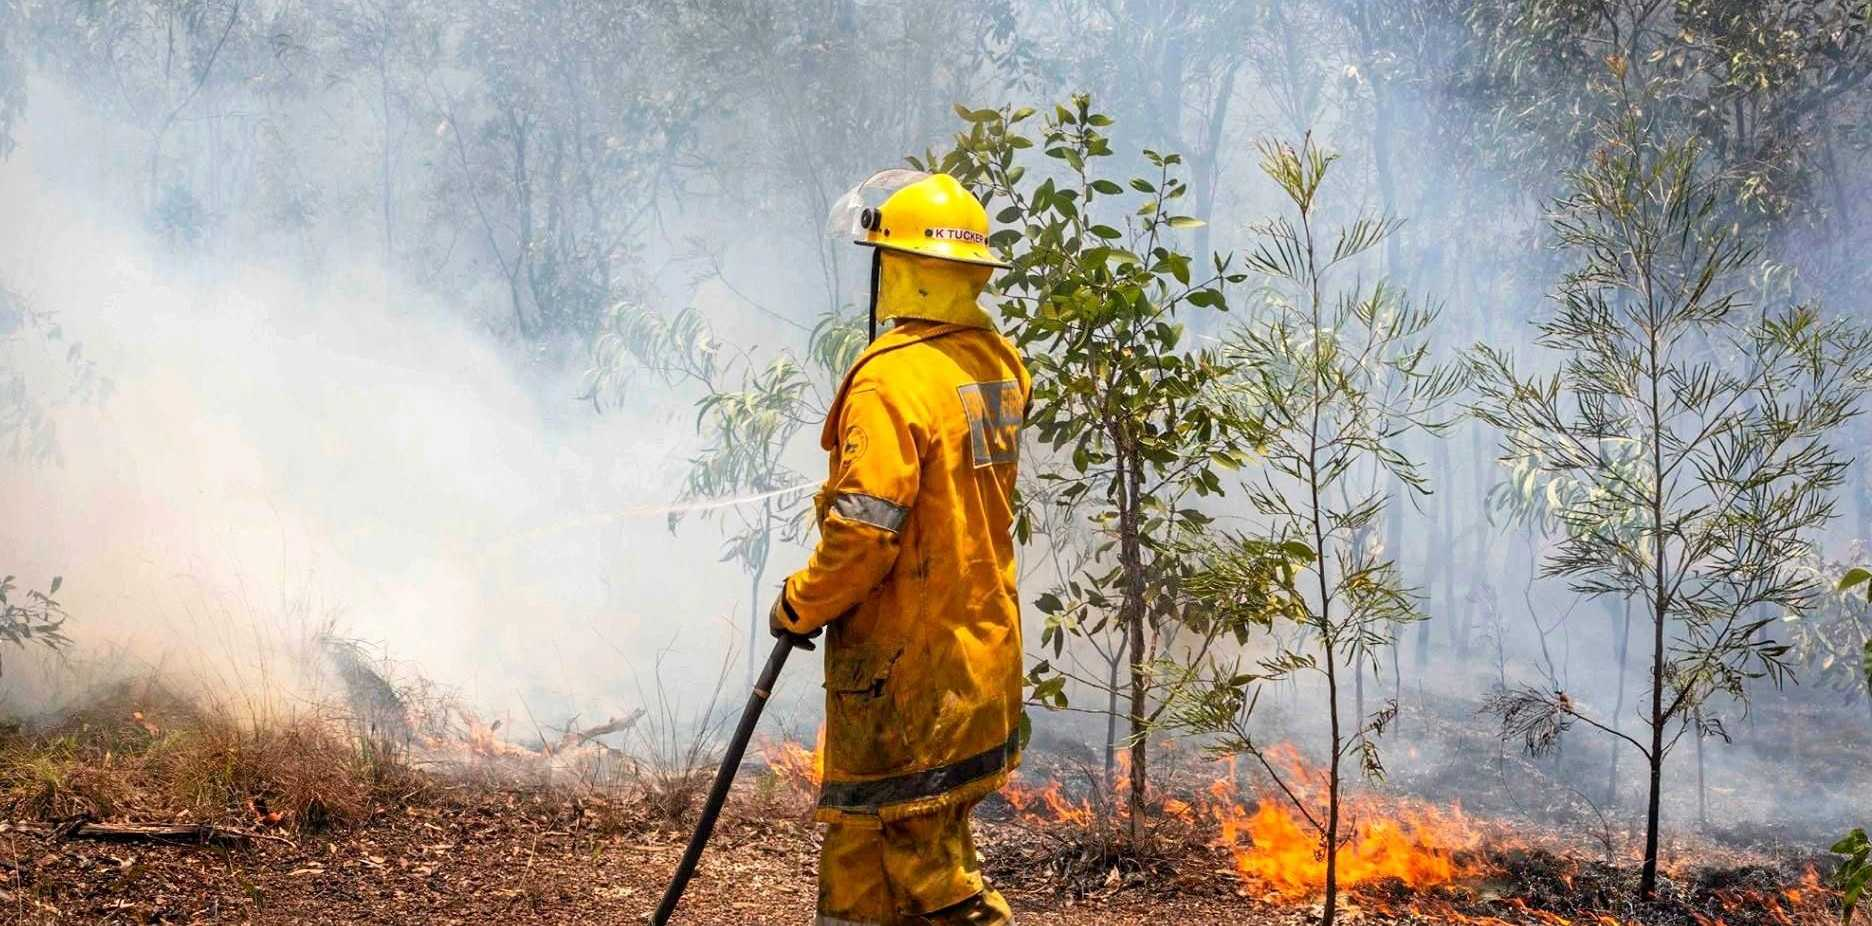 FIRE: A second Bundaberg blaze has sparked in Woongarra.